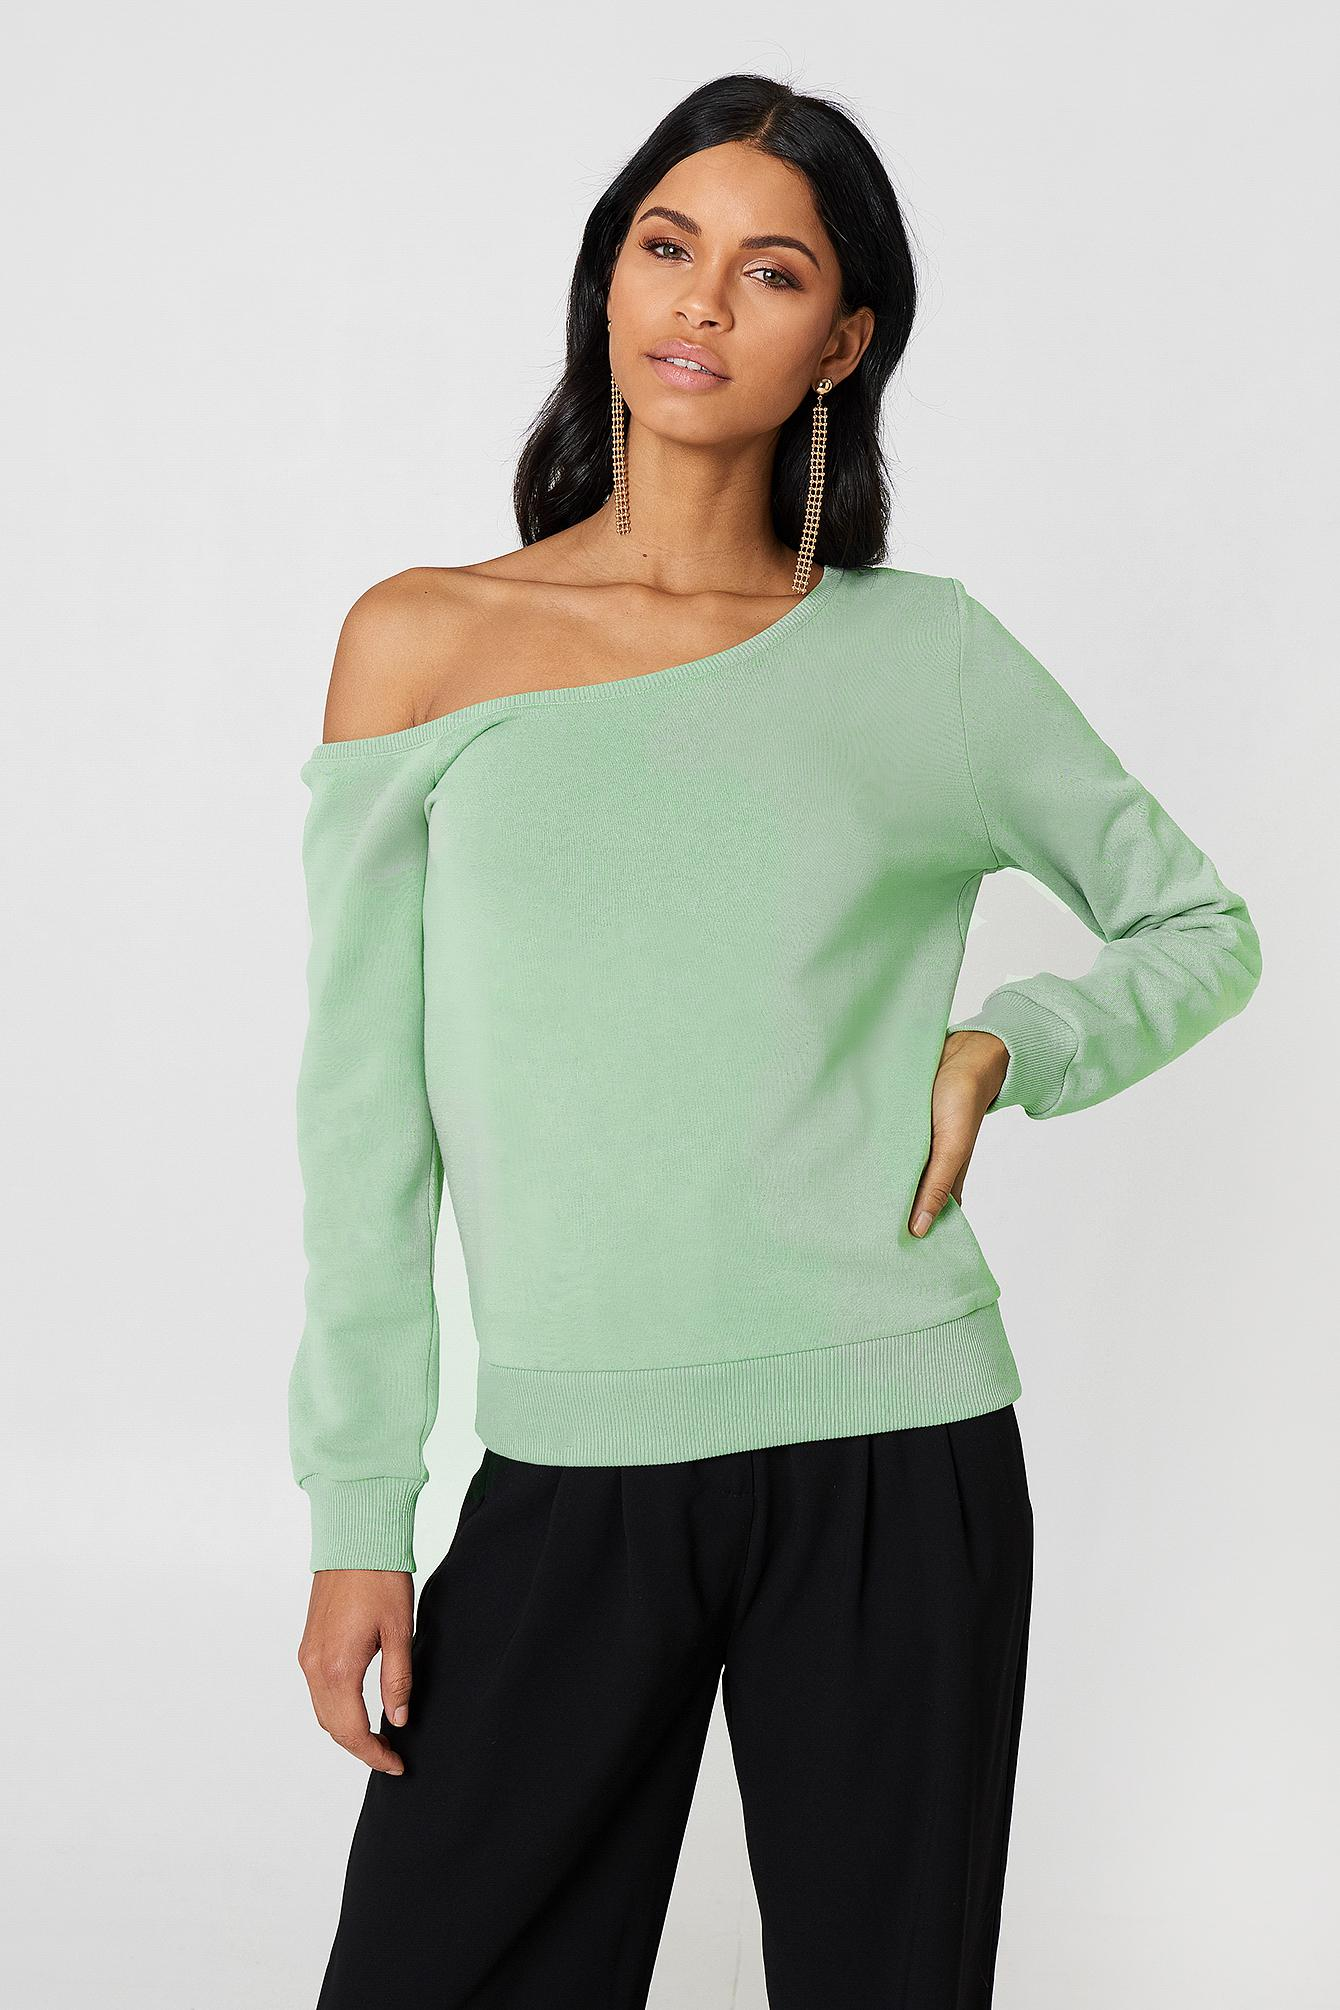 426f5ffde652ac Lyst - NA-KD One Shoulder Sweater Light Duck Green in Green